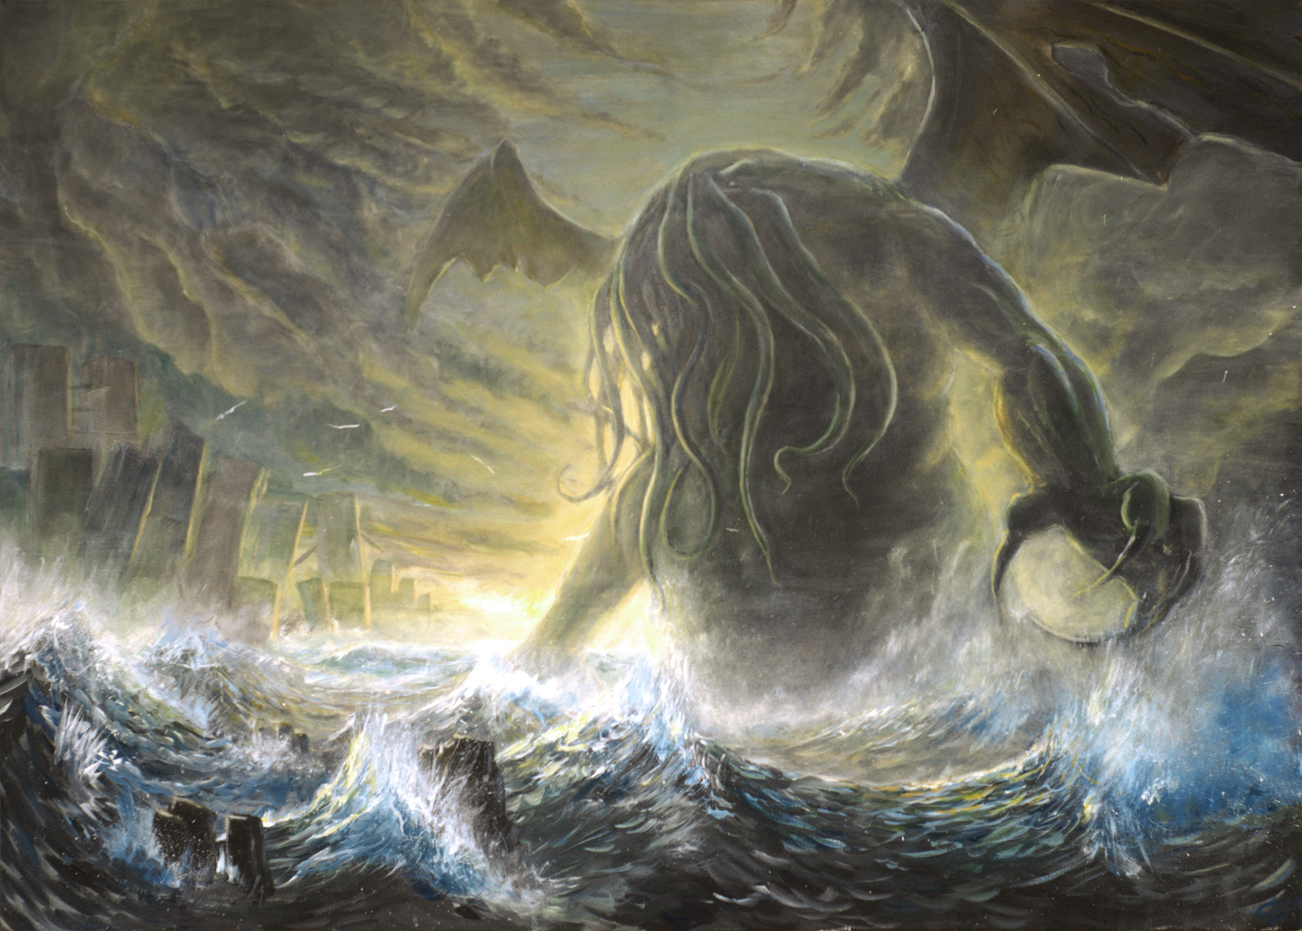 129 Cthulhu HD Wallpapers | Backgrounds - Wallpaper Abyss